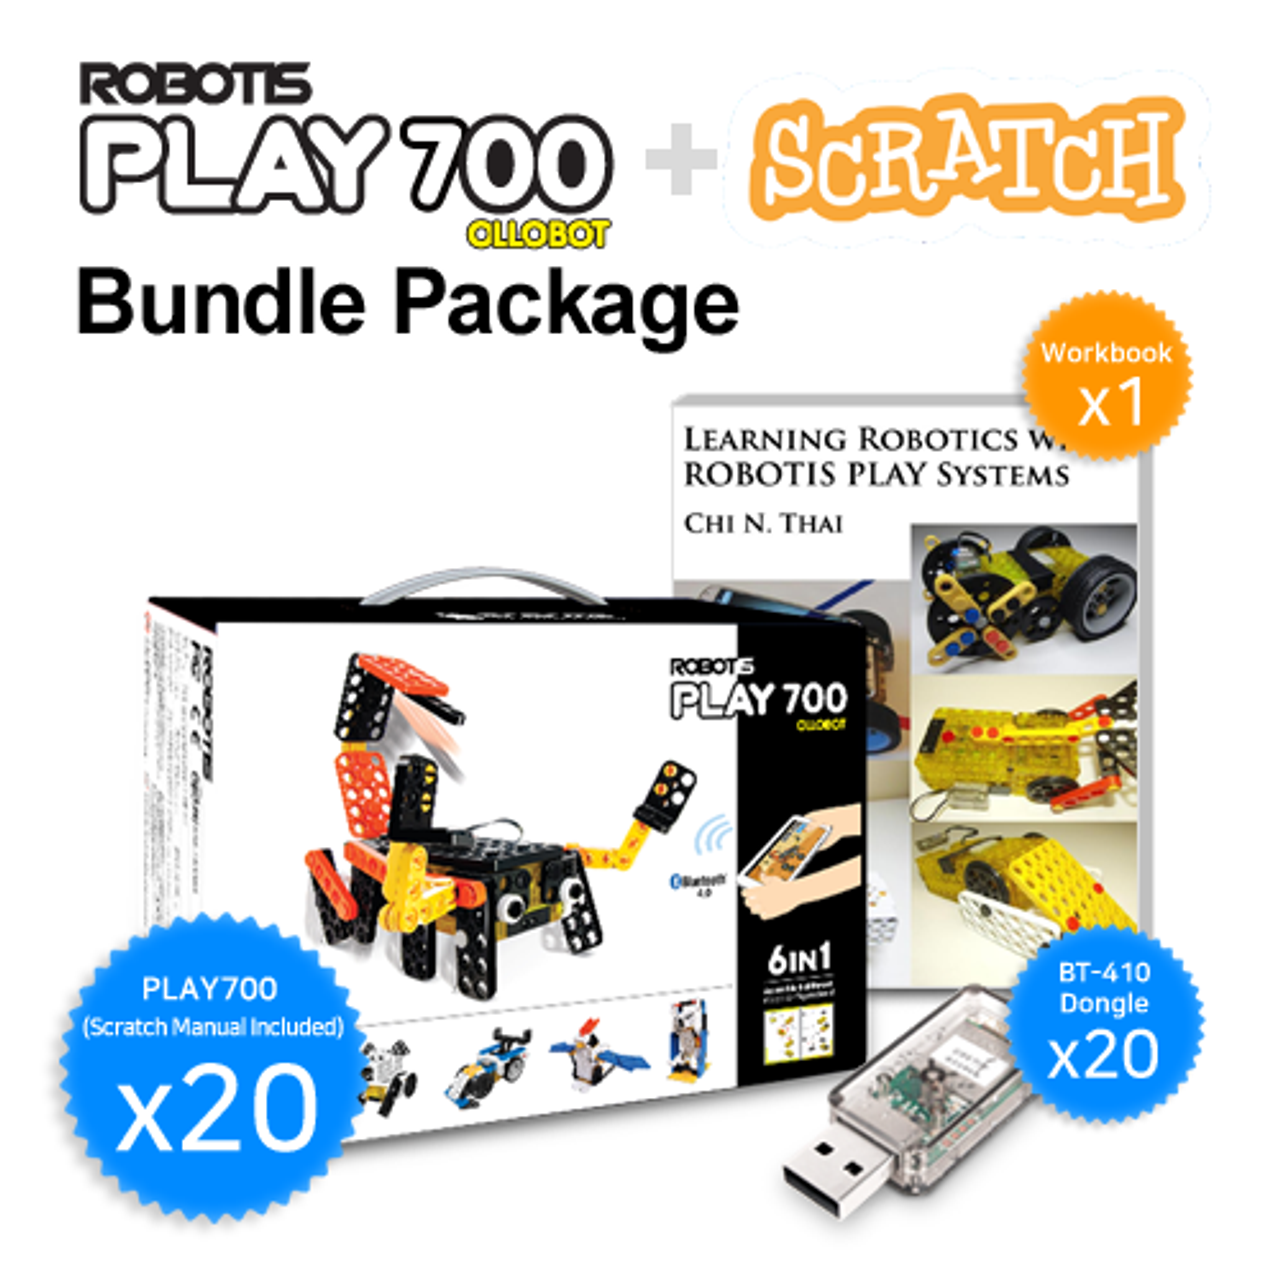 ROBOTIS PLAY 700 SCRATCH Bundle Package